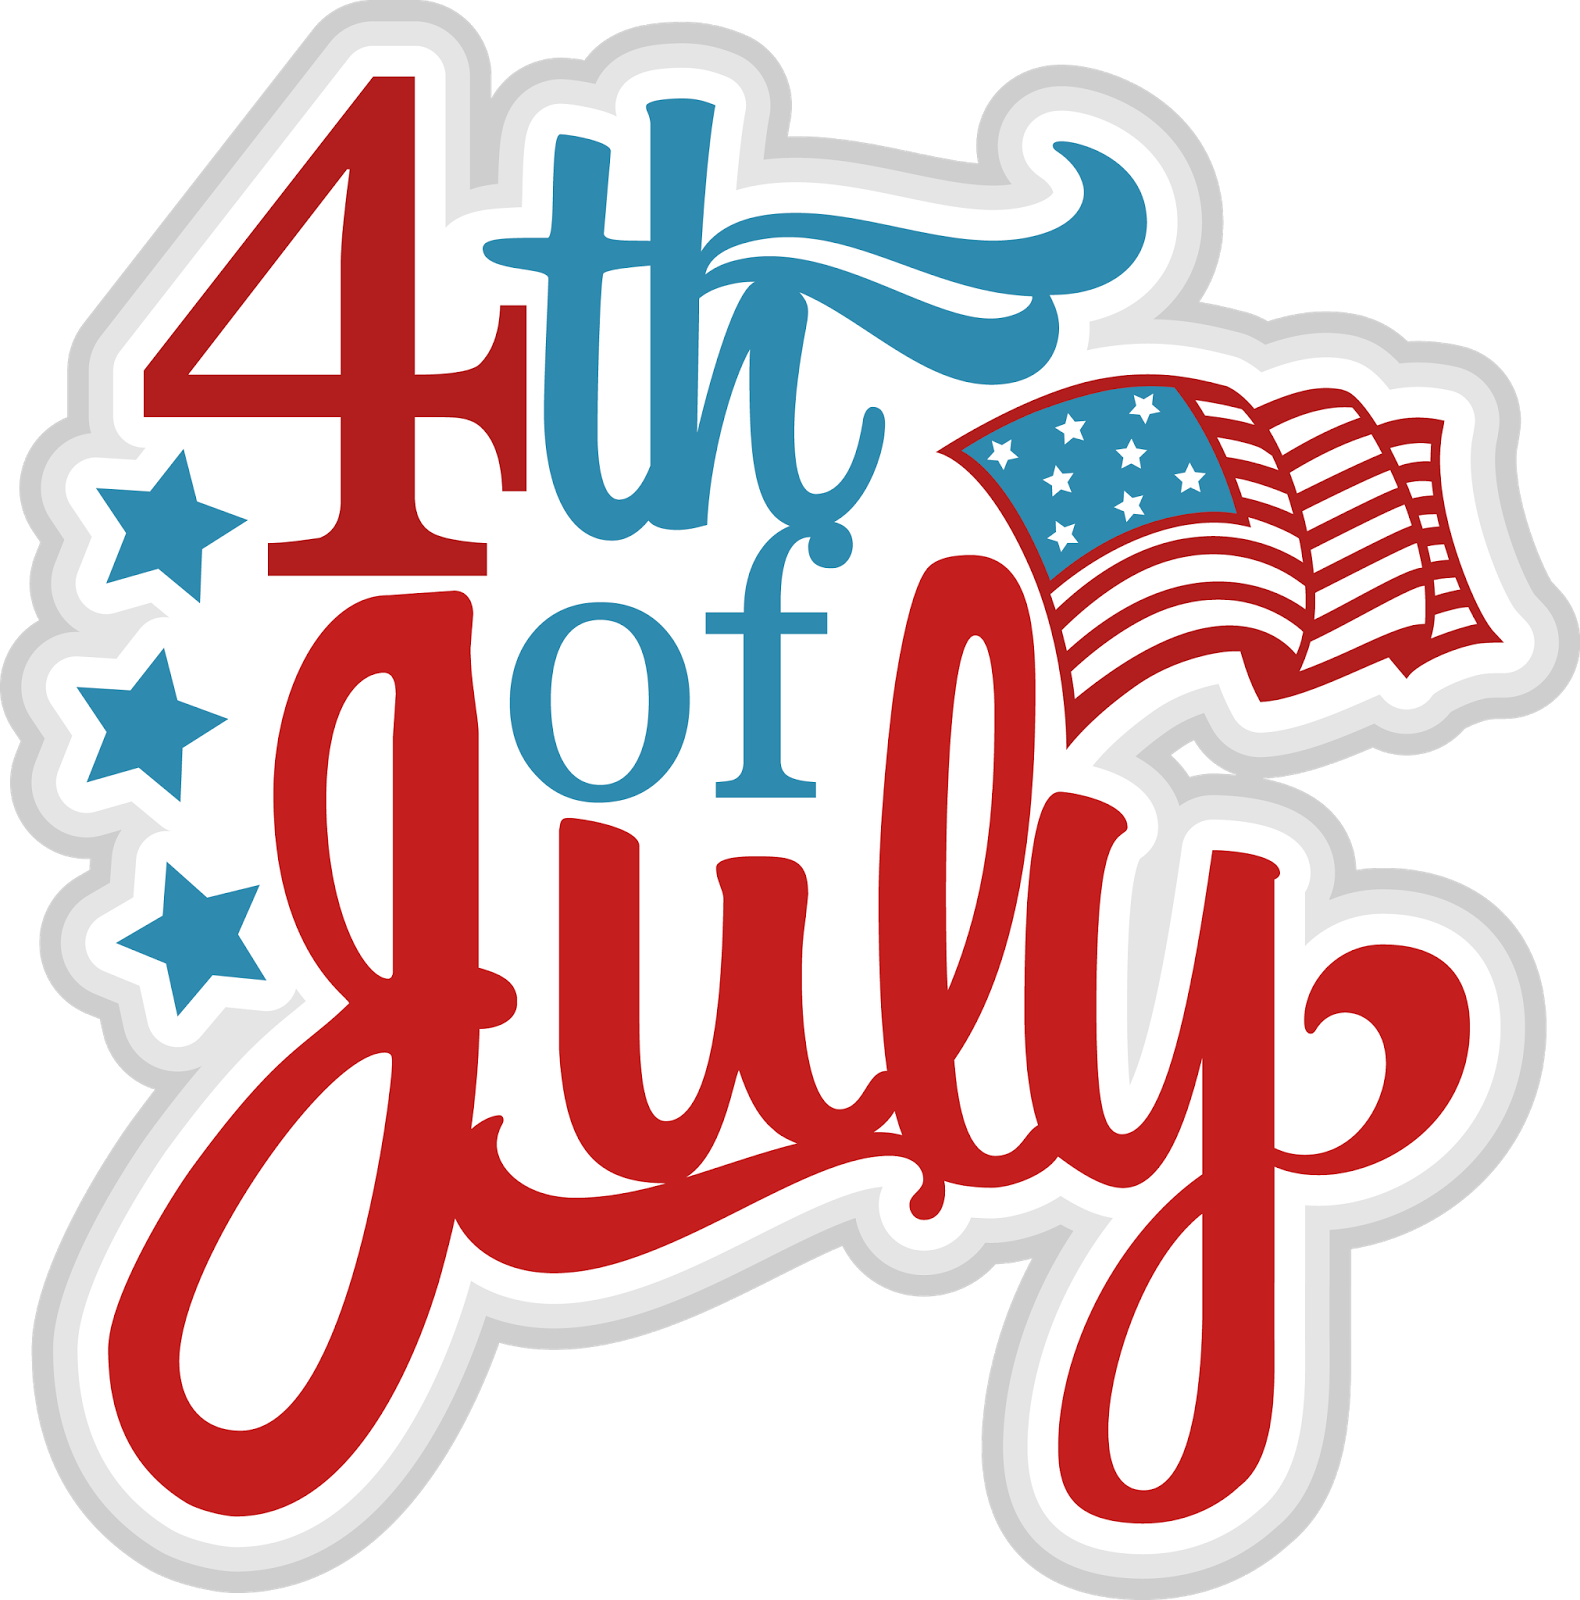 4th of july clipart 2018 image freeuse stock Animated* Happy 4th of July Images Free for Facebook | Happy 4th of ... image freeuse stock